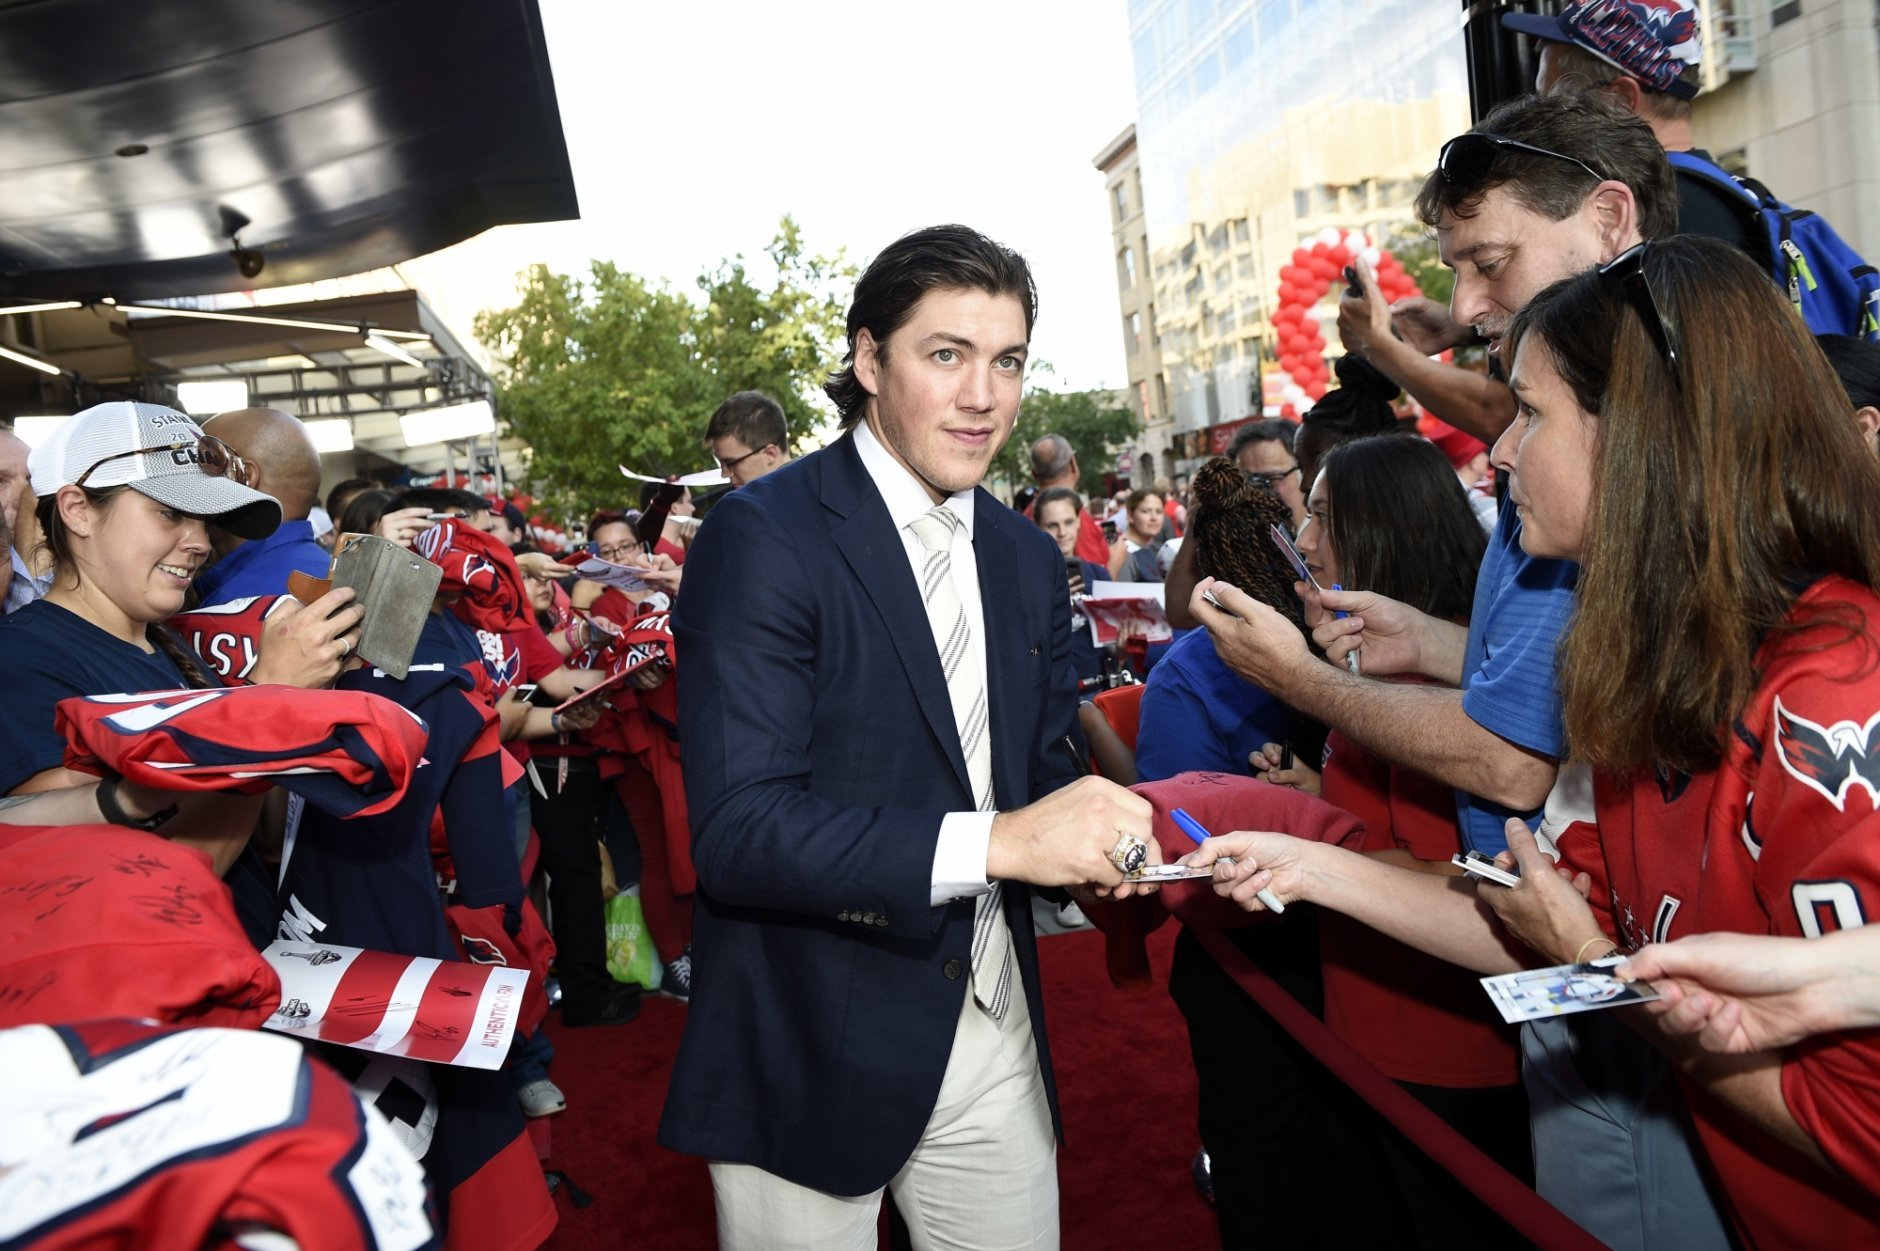 d18b905e Washington Capitals' T.J. Oshie signs for fans as he walks the red carpet  before their